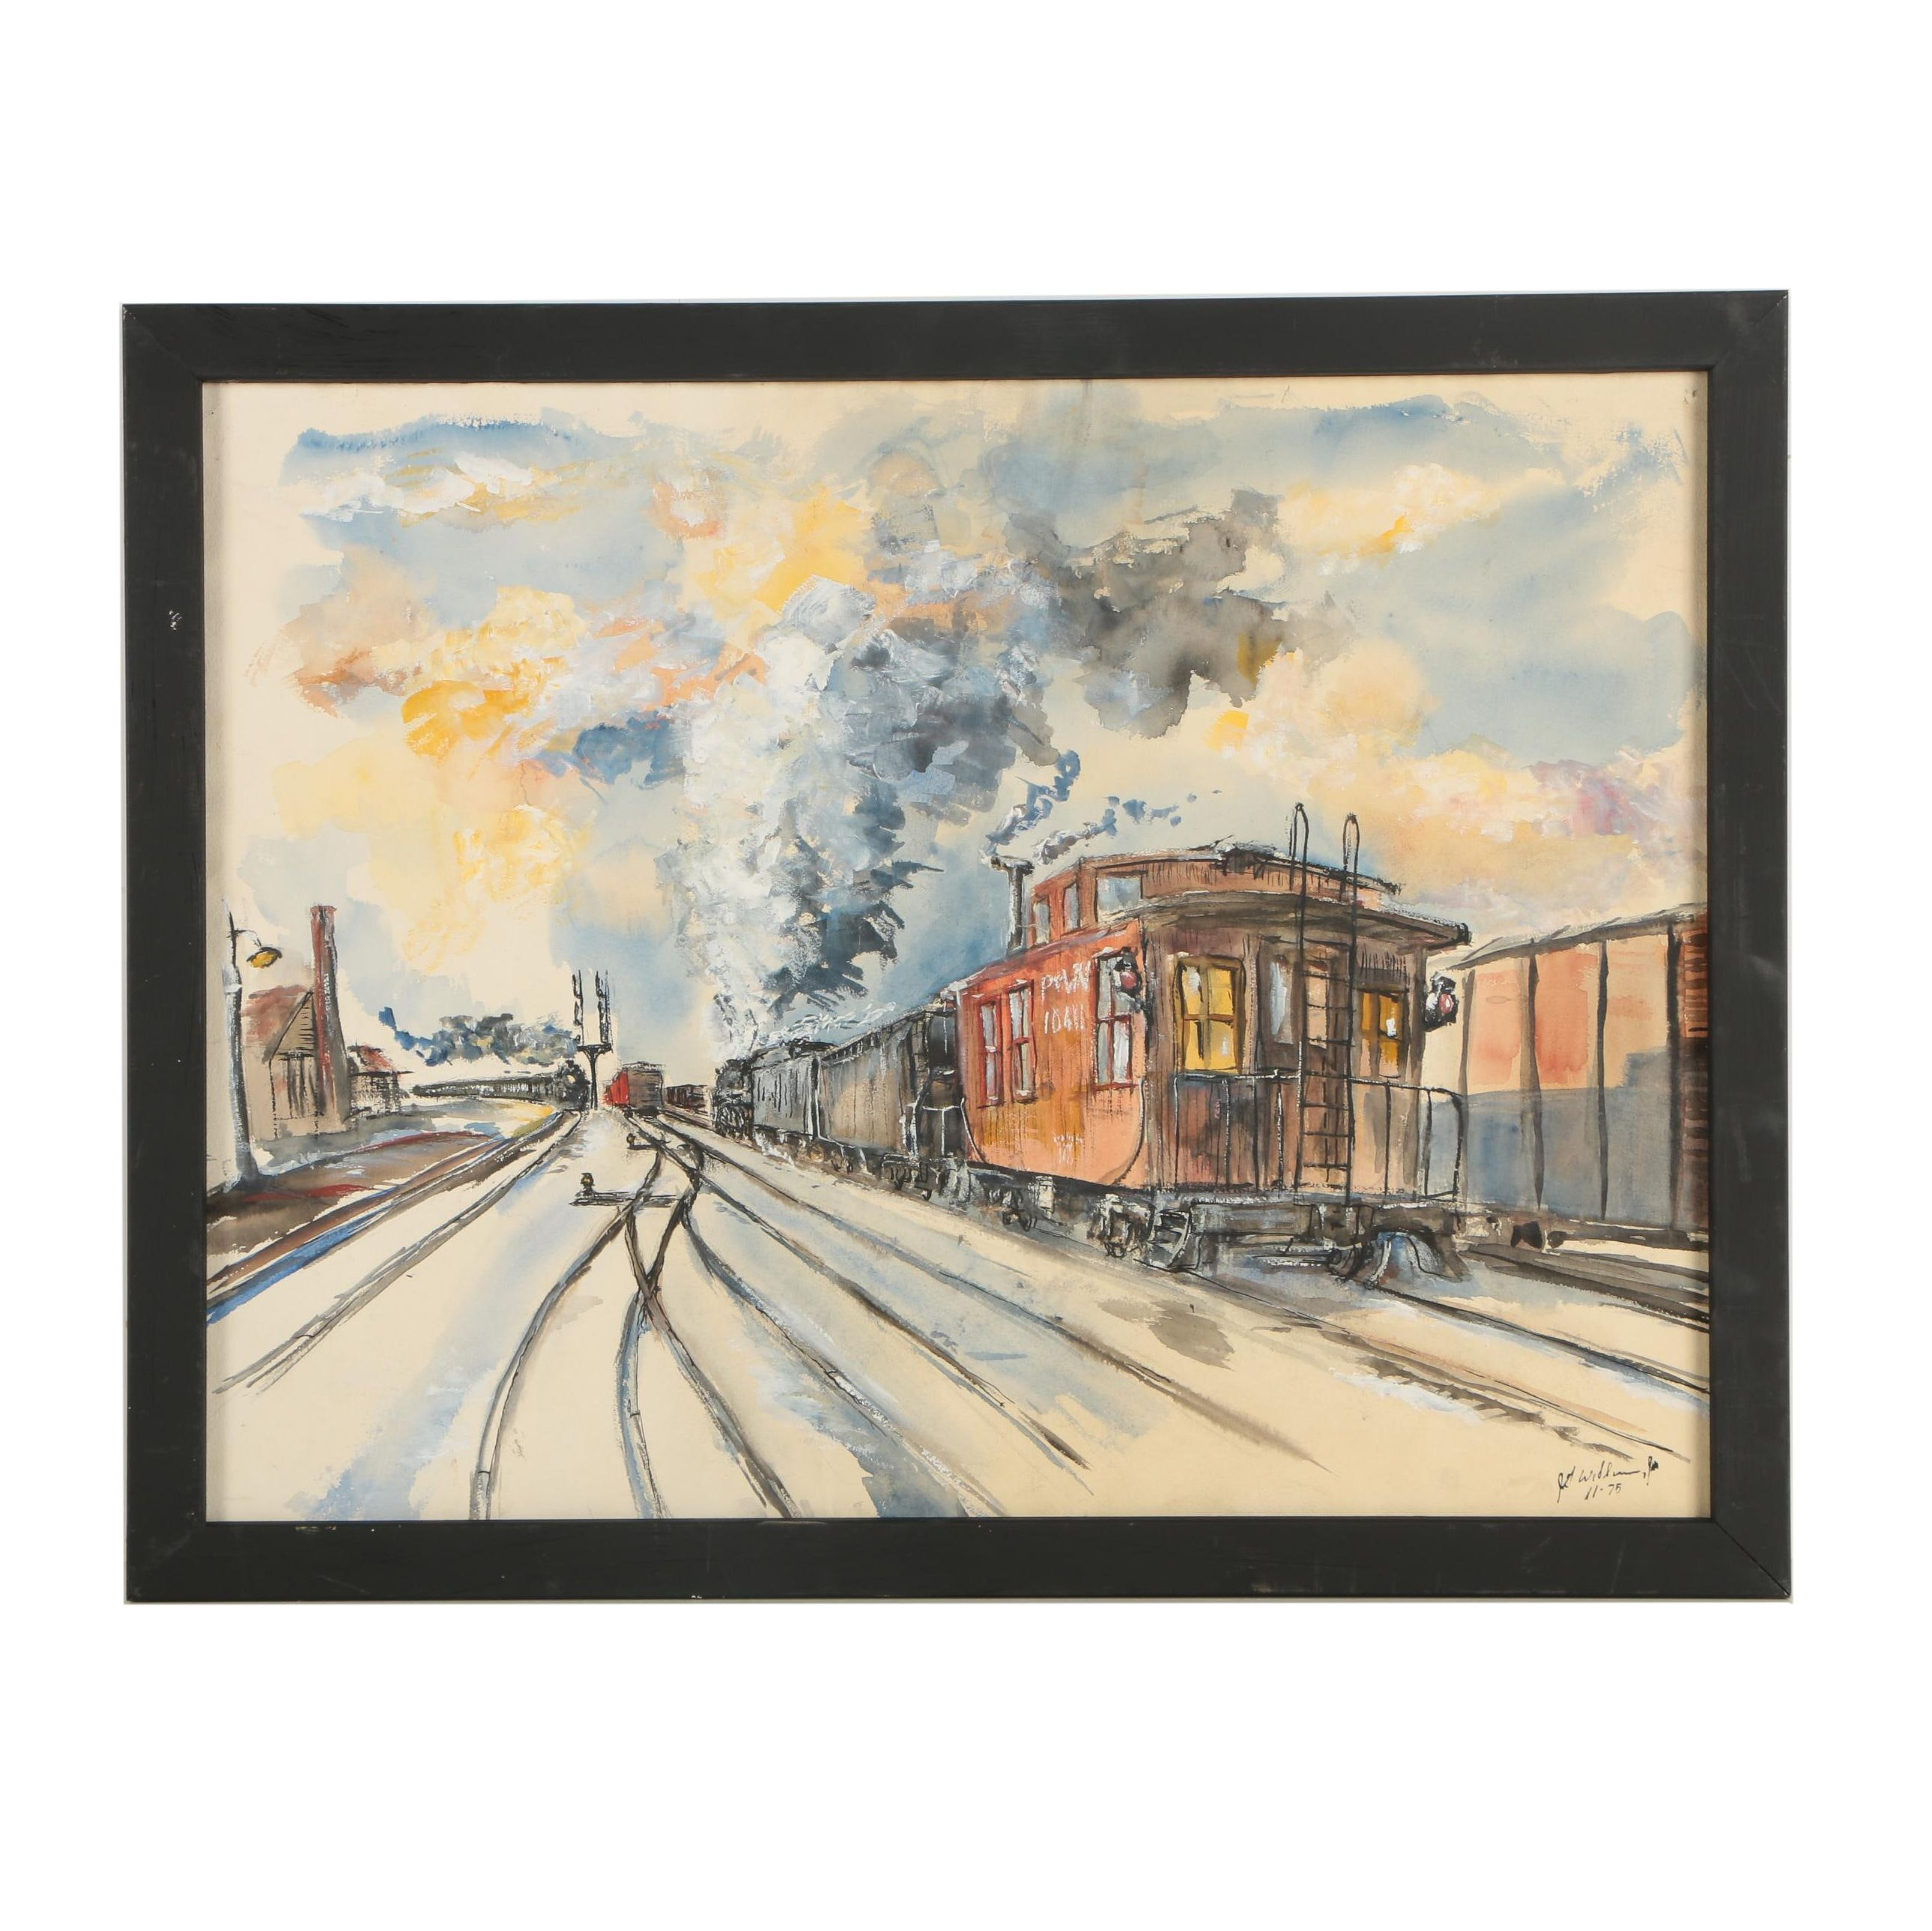 J.G. Williams 1975 Watercolor and Gouache Painting of Train Yard